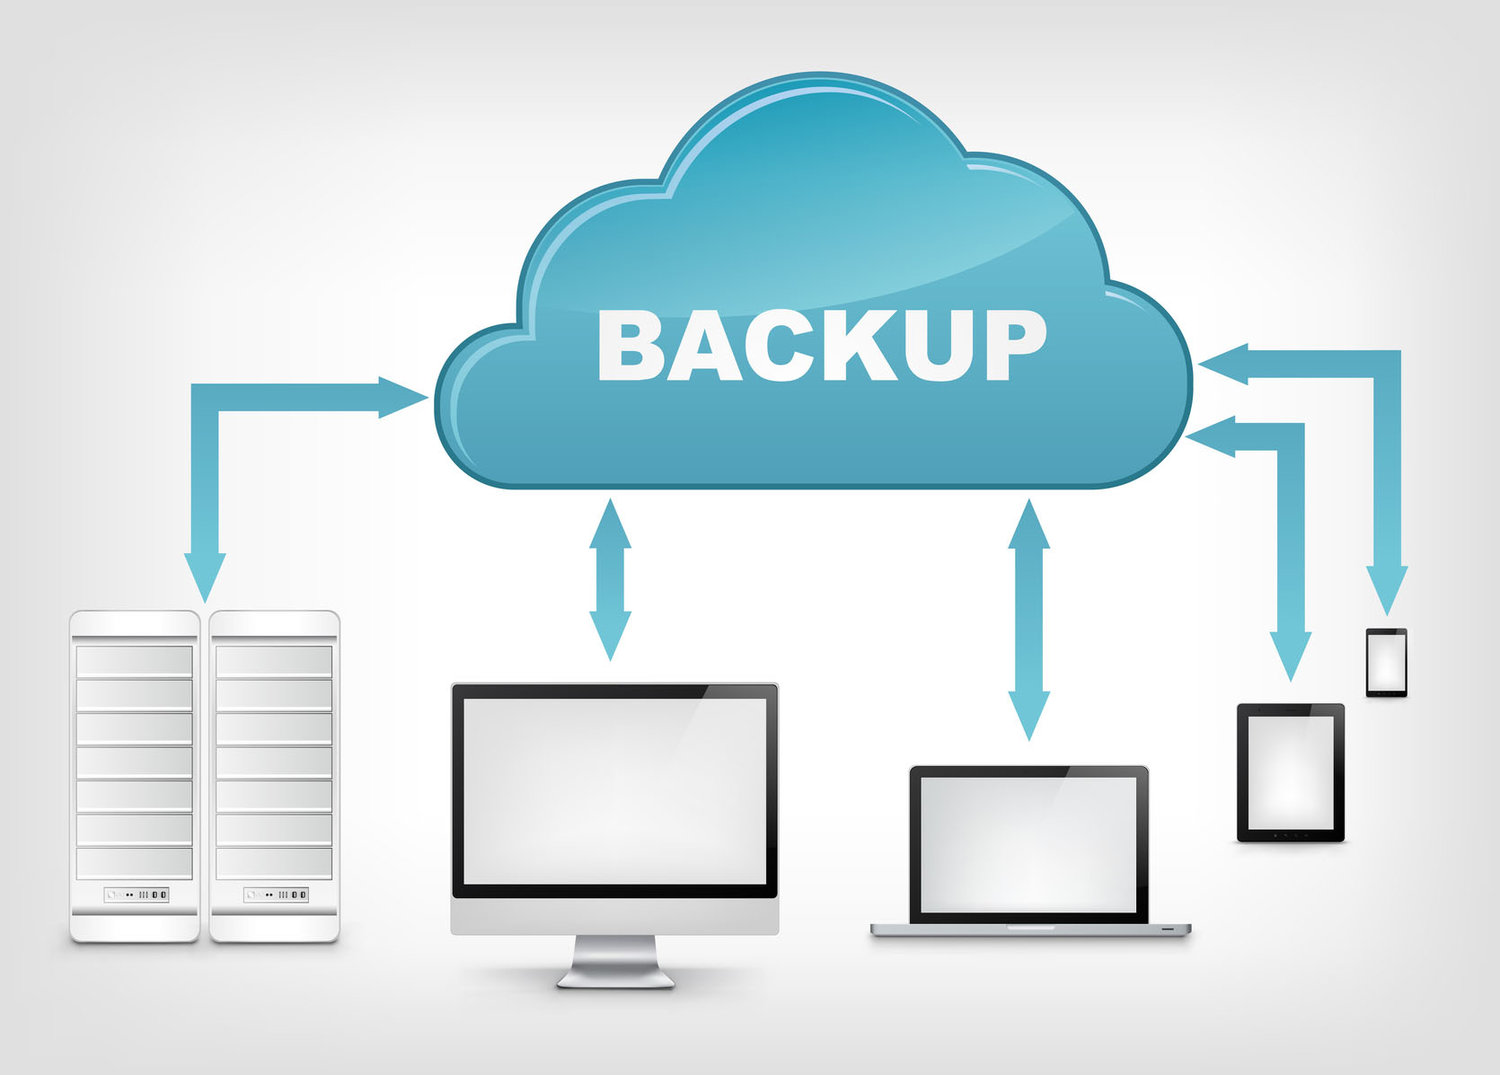 Device Backup Jepordizes App Data — Emerging Defense